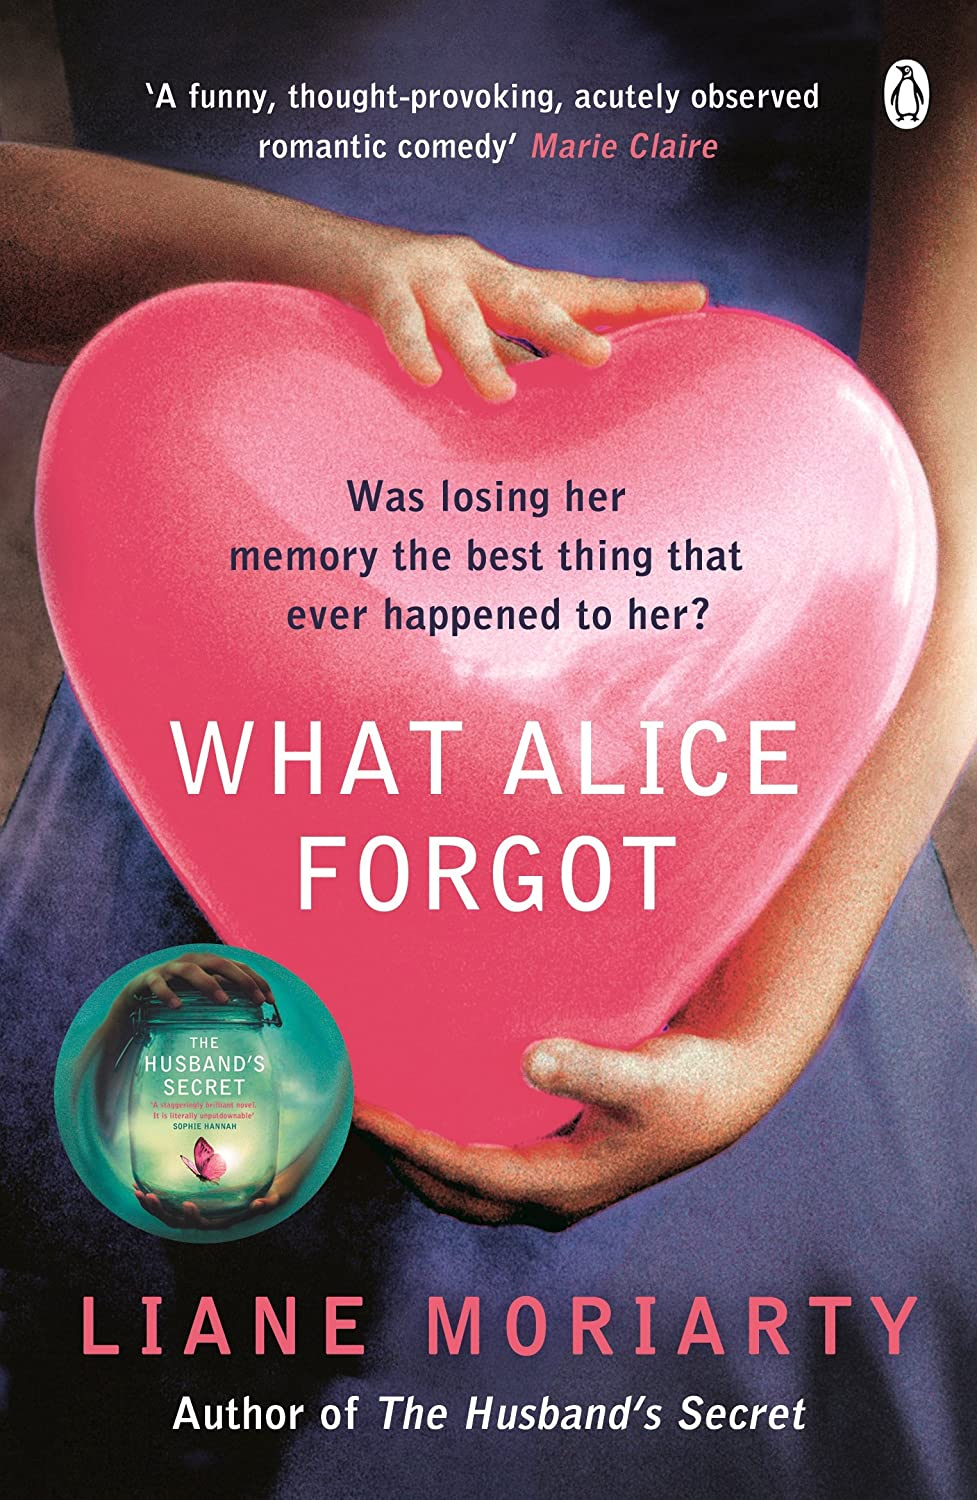 What Alice Forgot – Liane Moriarty